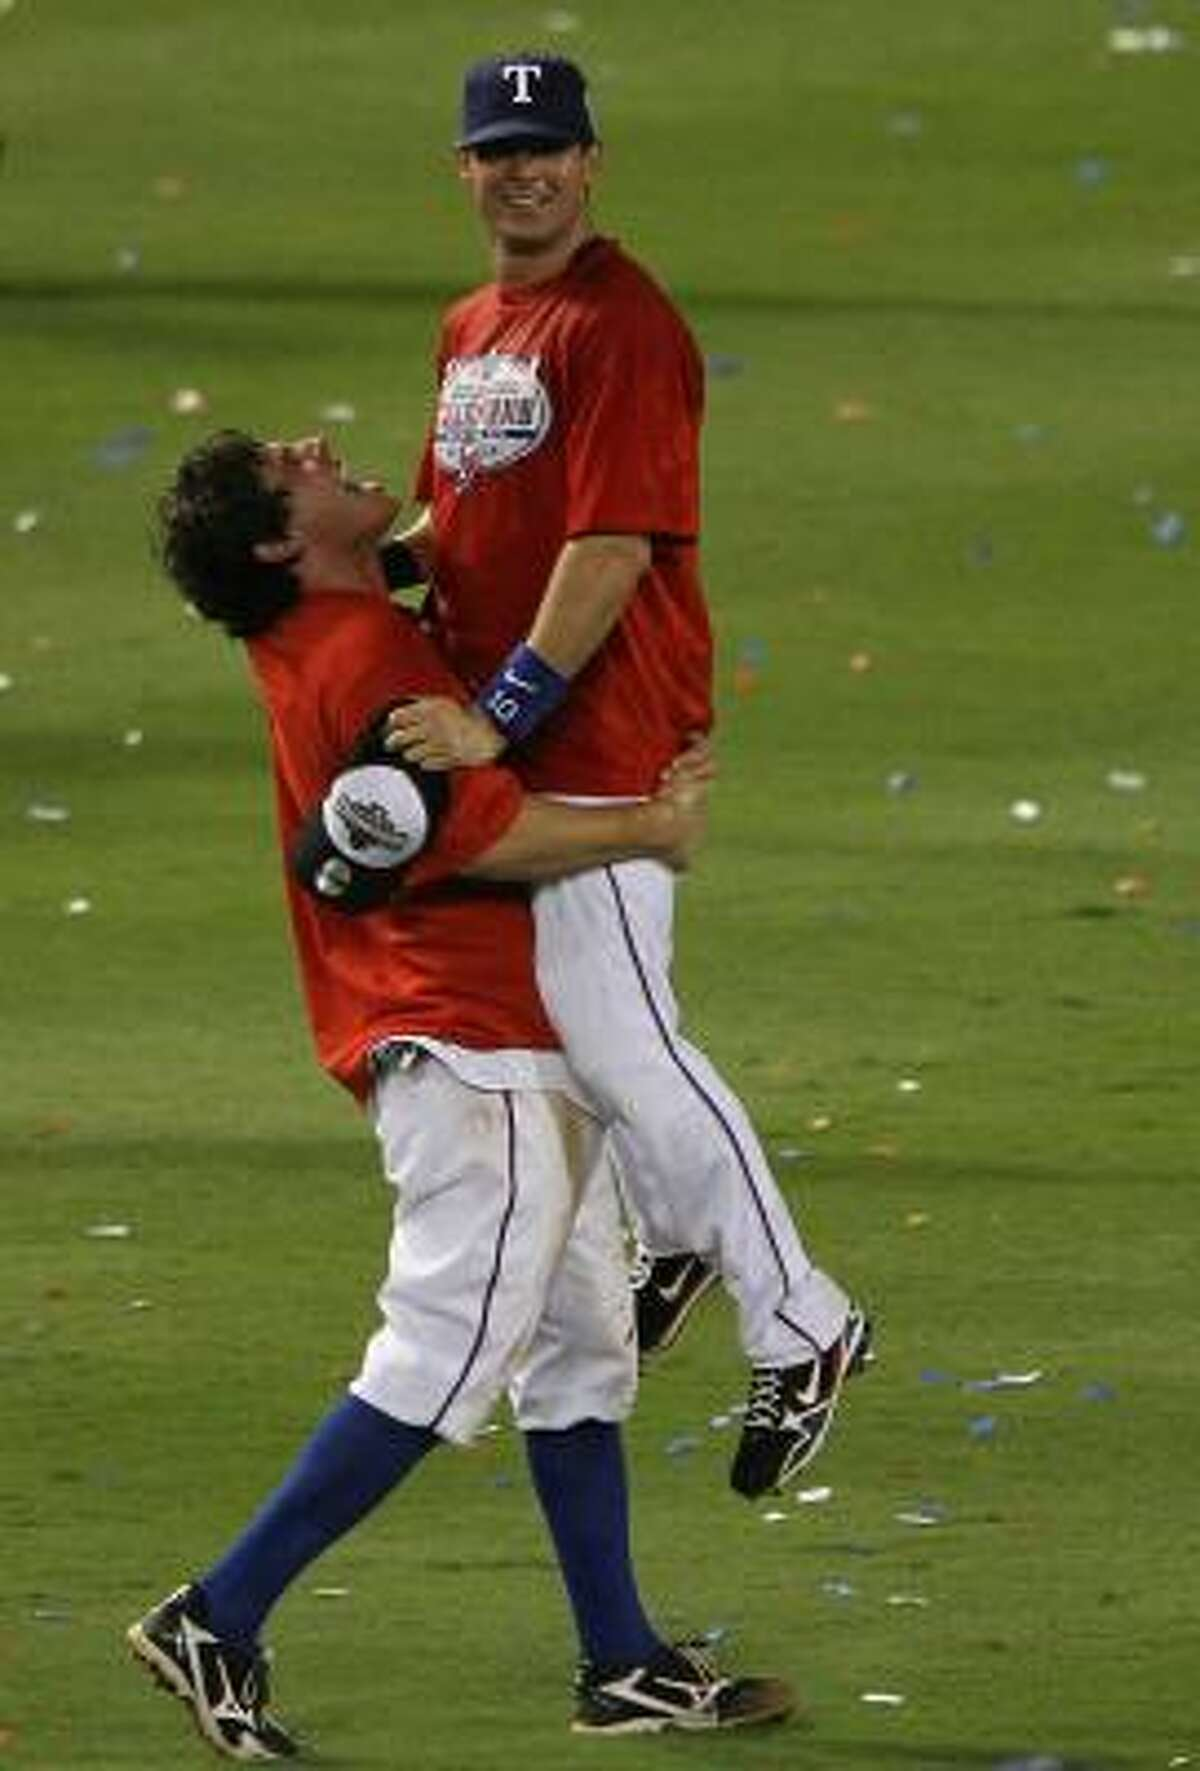 Ian Kinsler of the Texas Rangers picks up teammate Michael Young as they celebrate on the field after defeating the New York Yankees.